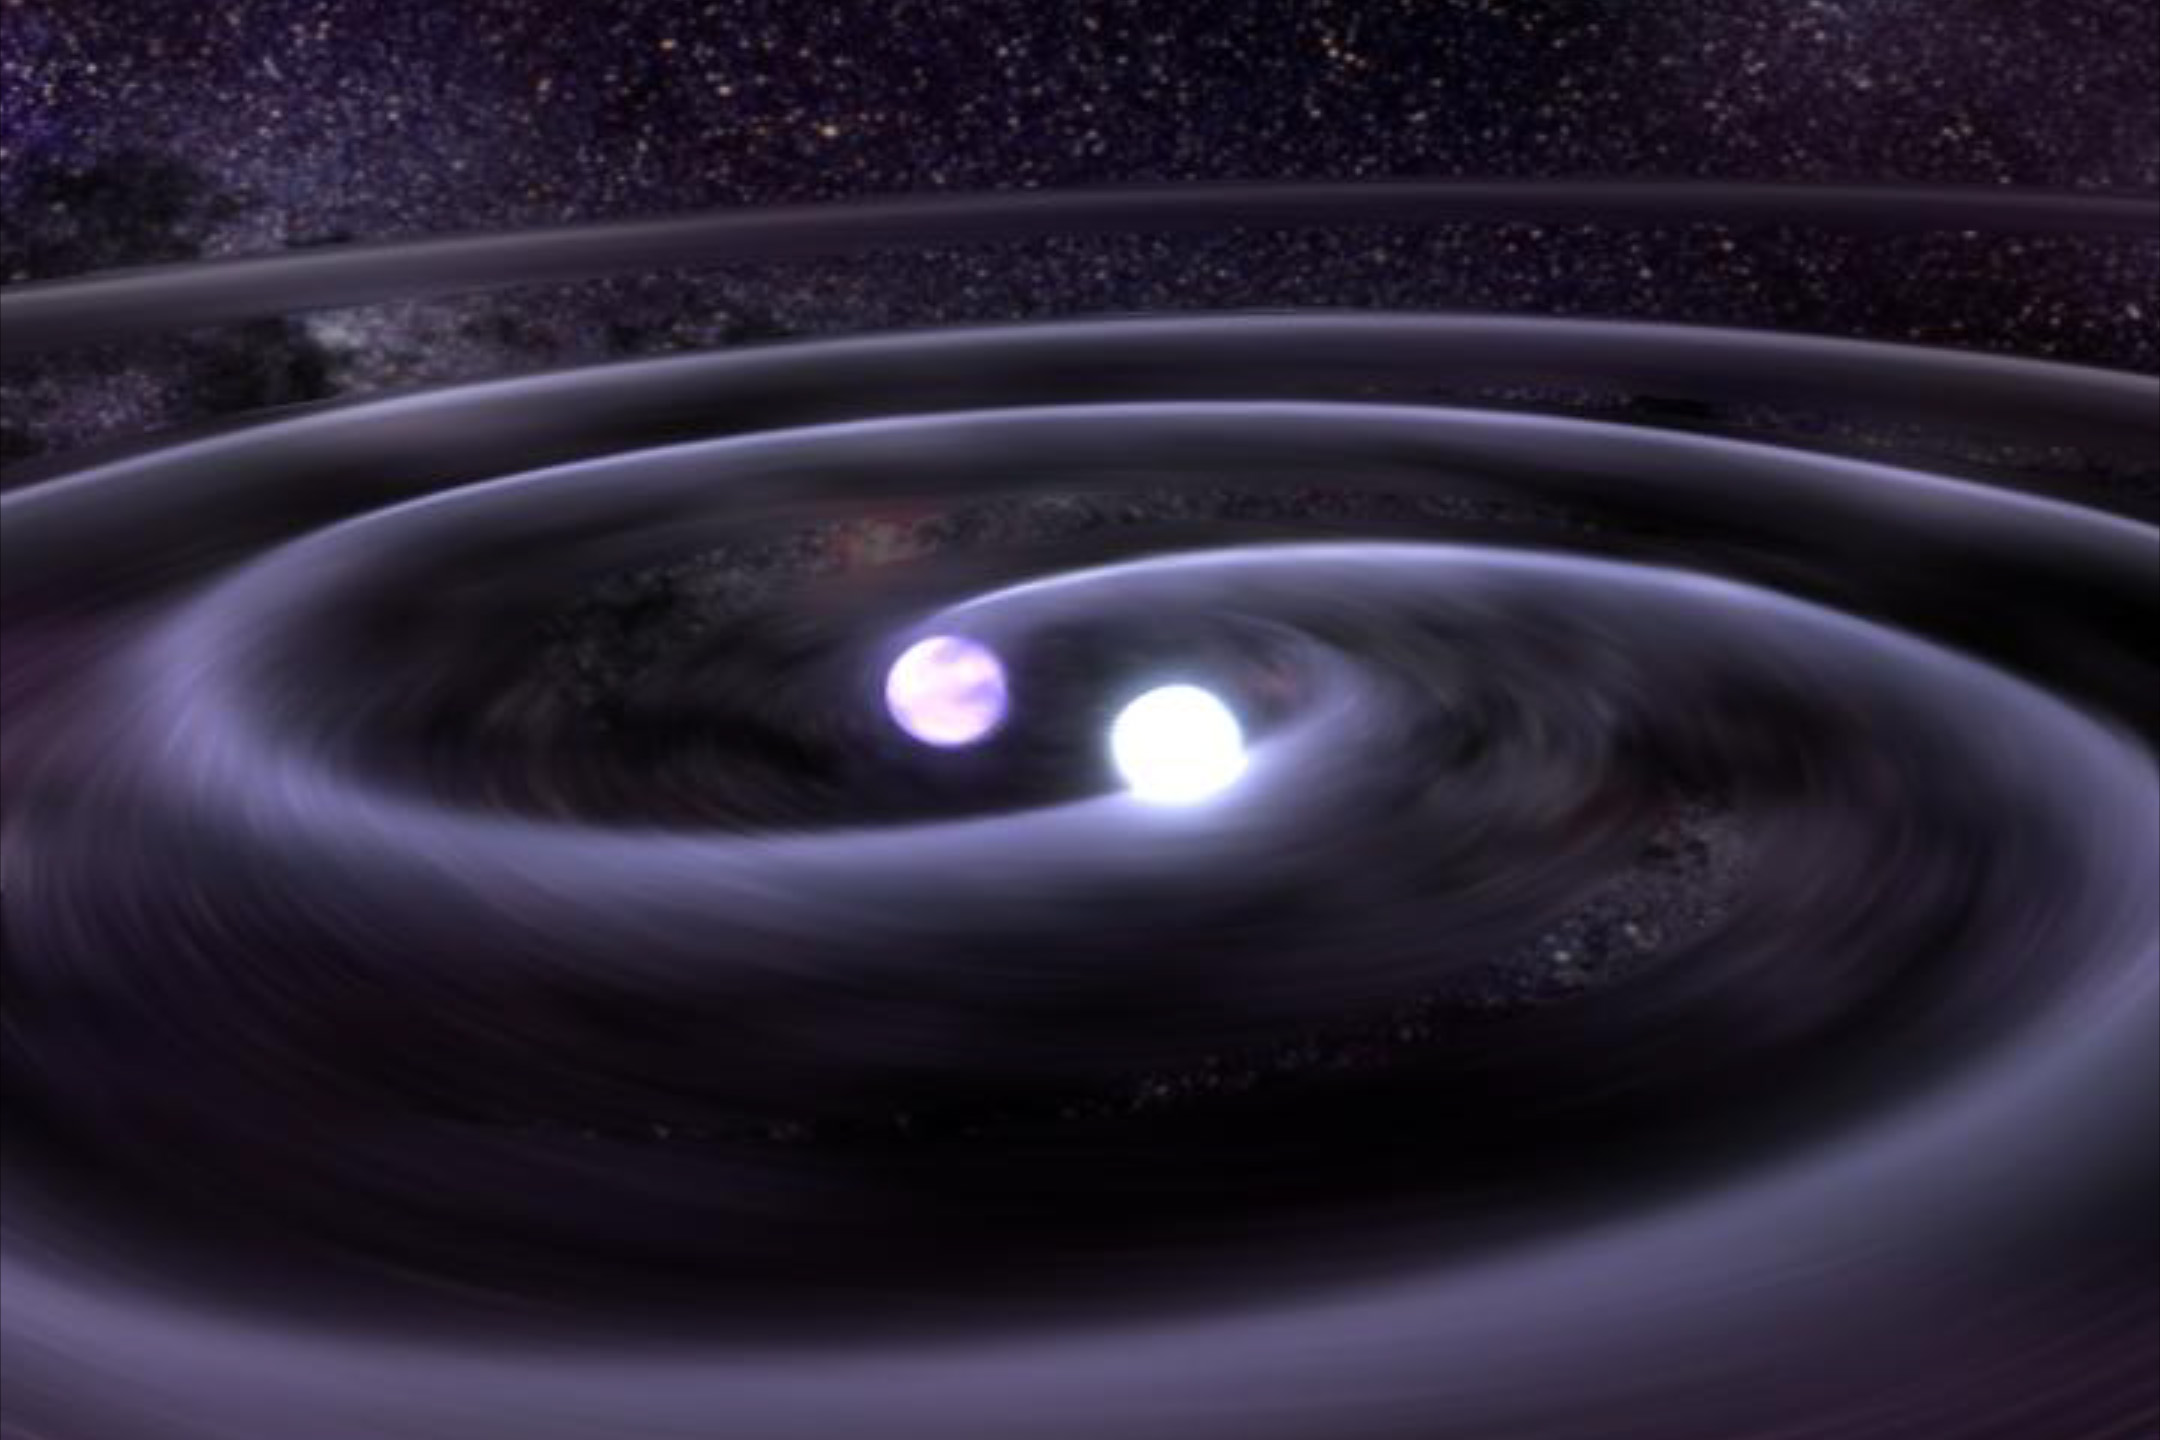 Gravitational Waves: The Big Bang's Smoking Gun